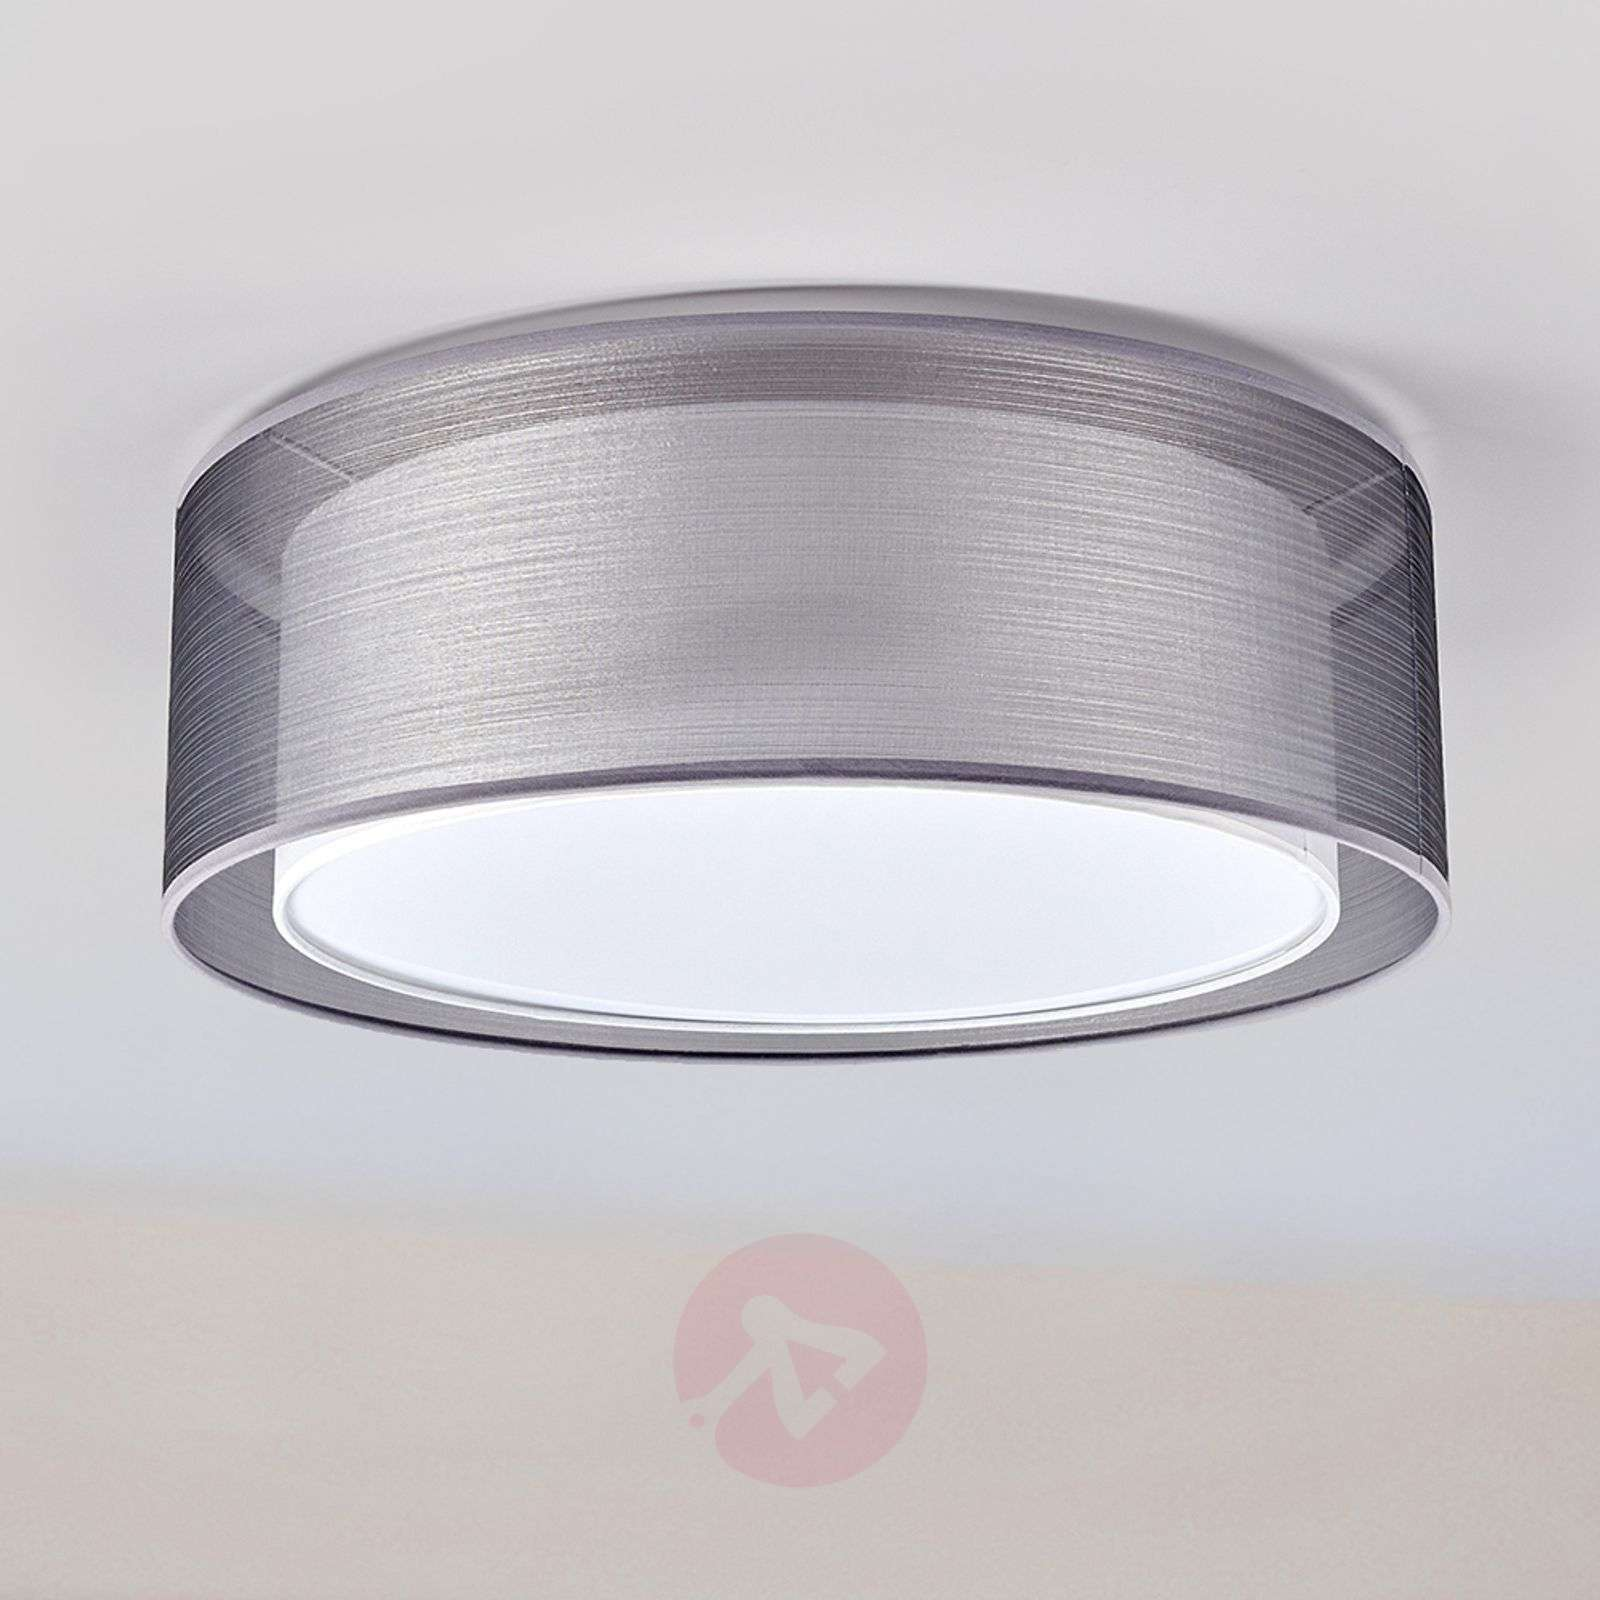 Grey nica ceiling light with double fabric shade lights grey nica ceiling light with double fabric shade 4018005 03 aloadofball